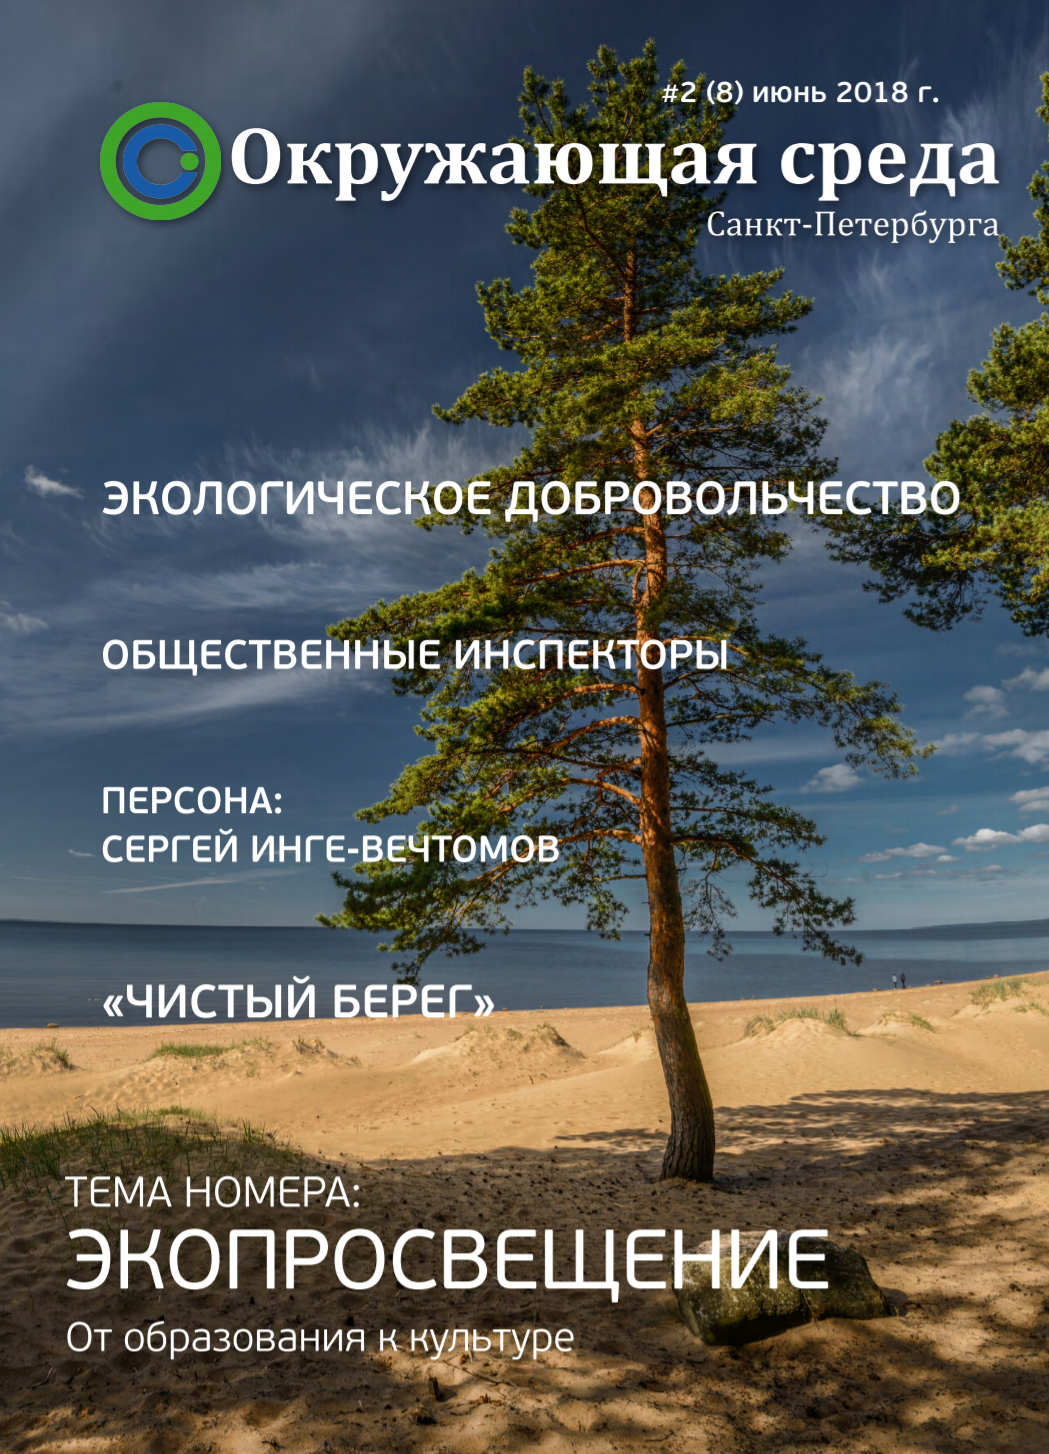 http://ecopeterburg.ru/wp-content/uploads/2018/06/Screenshot_5.png